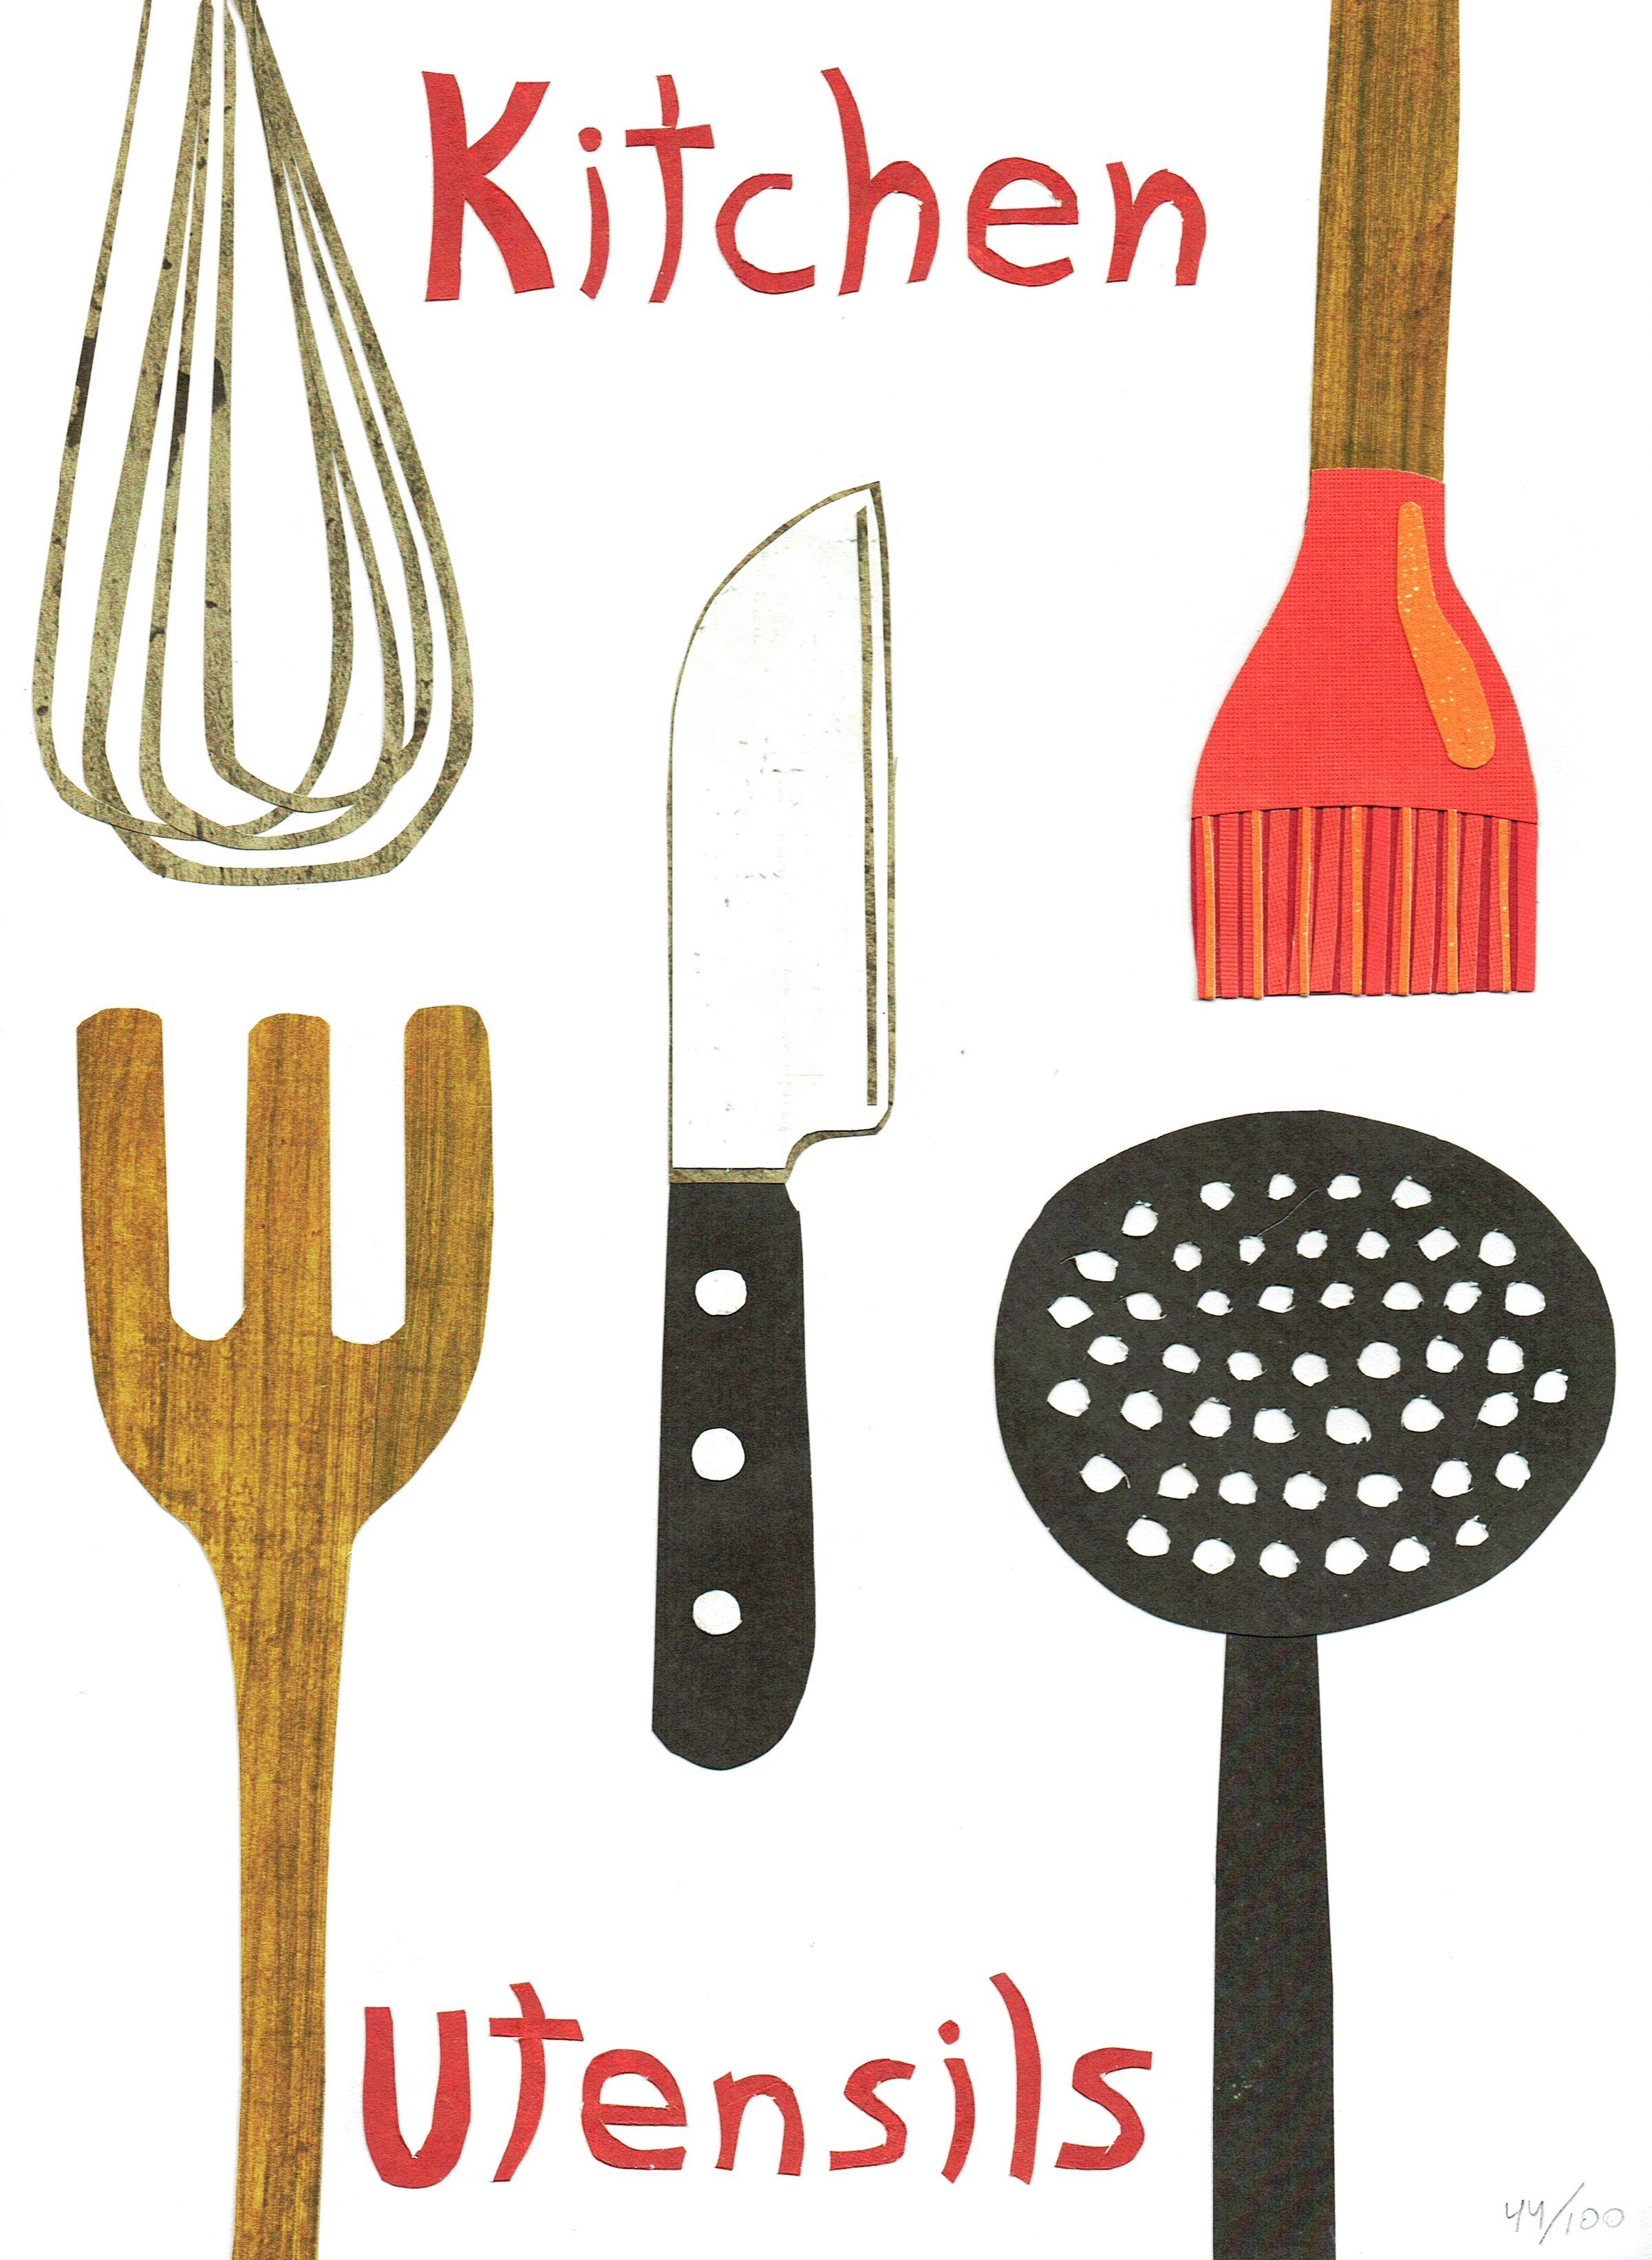 Day 44 - Kitchen Utensils